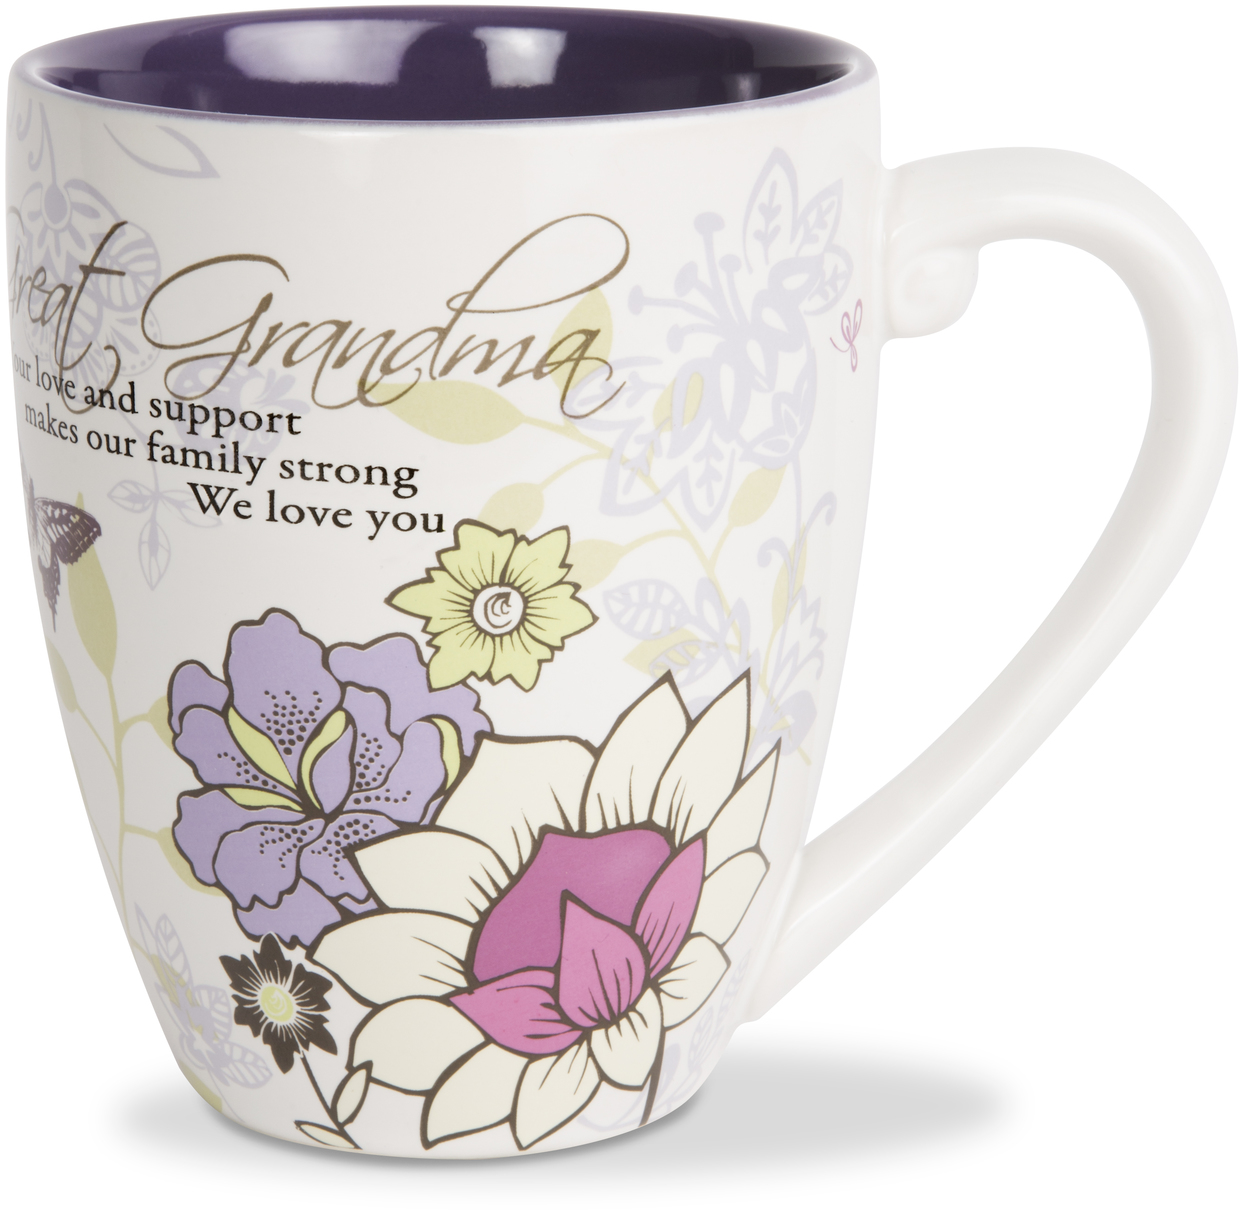 Great Grandma by Mark My Words - Great Grandma - 20 oz Cup